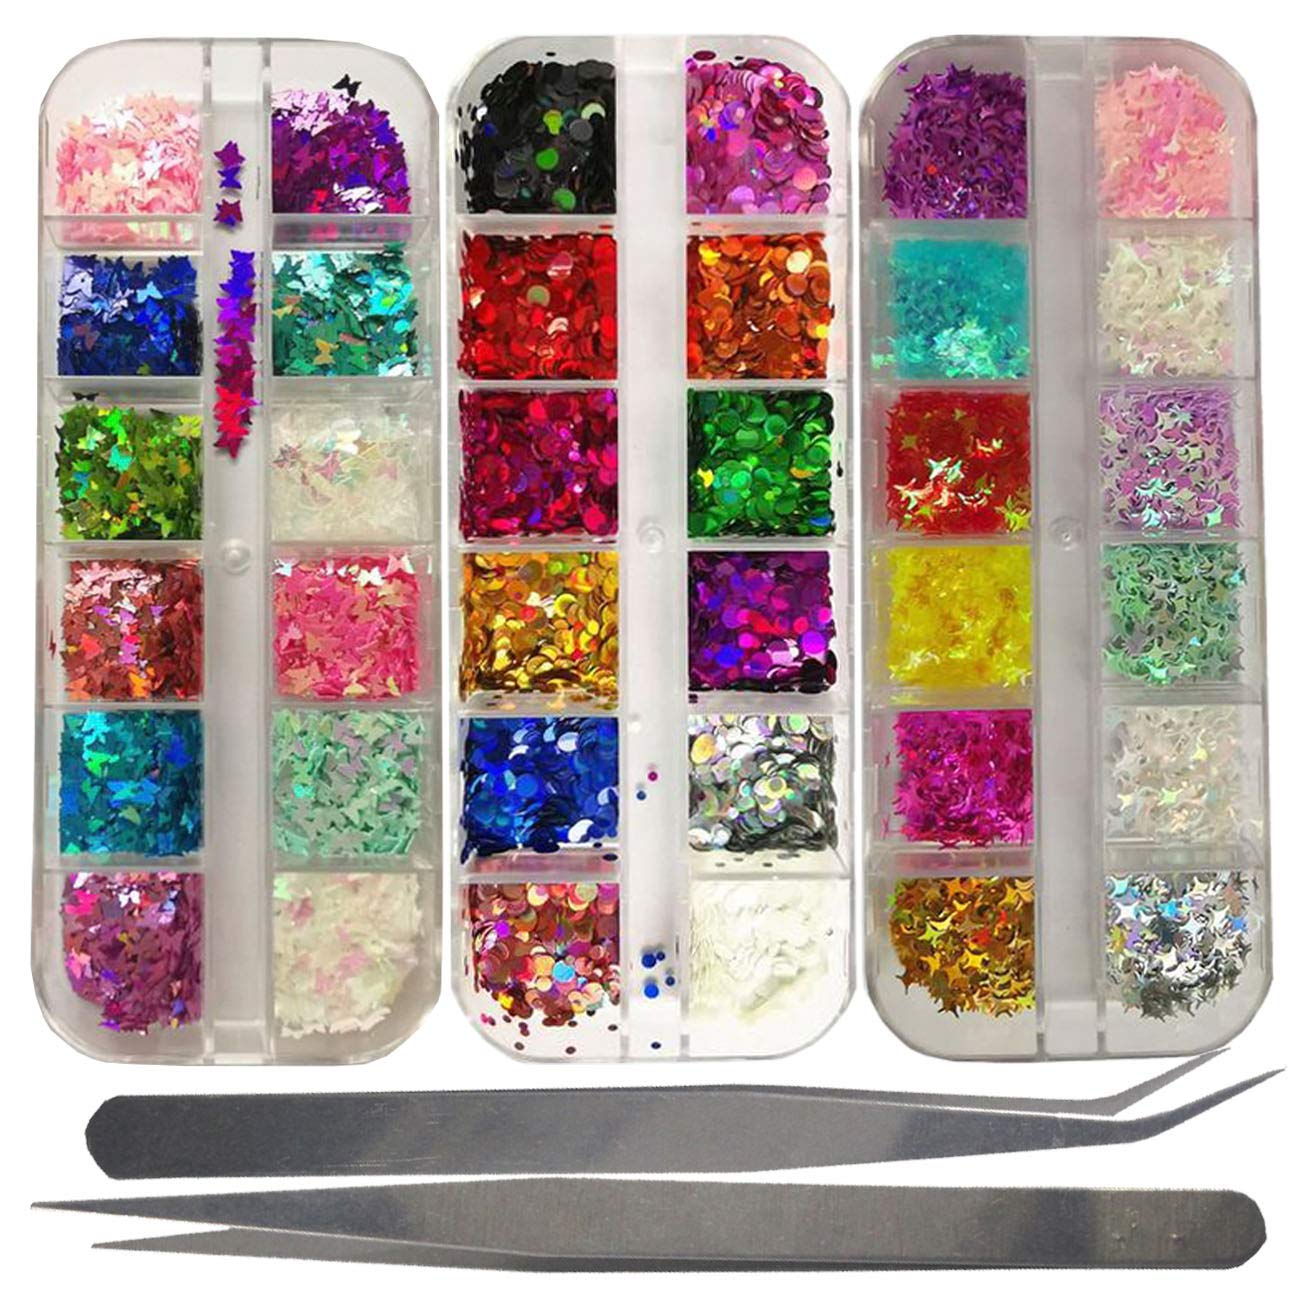 Holographic Butterfly Star Round Nail Glitter Flakes Kit Laser Gold Silver Iridescent Disc Chunky Nail Sequins, 2pc Tweezers Tools Nail Art Kit for Nail Design, Crafts, Resin DIY (Star Butterfly)